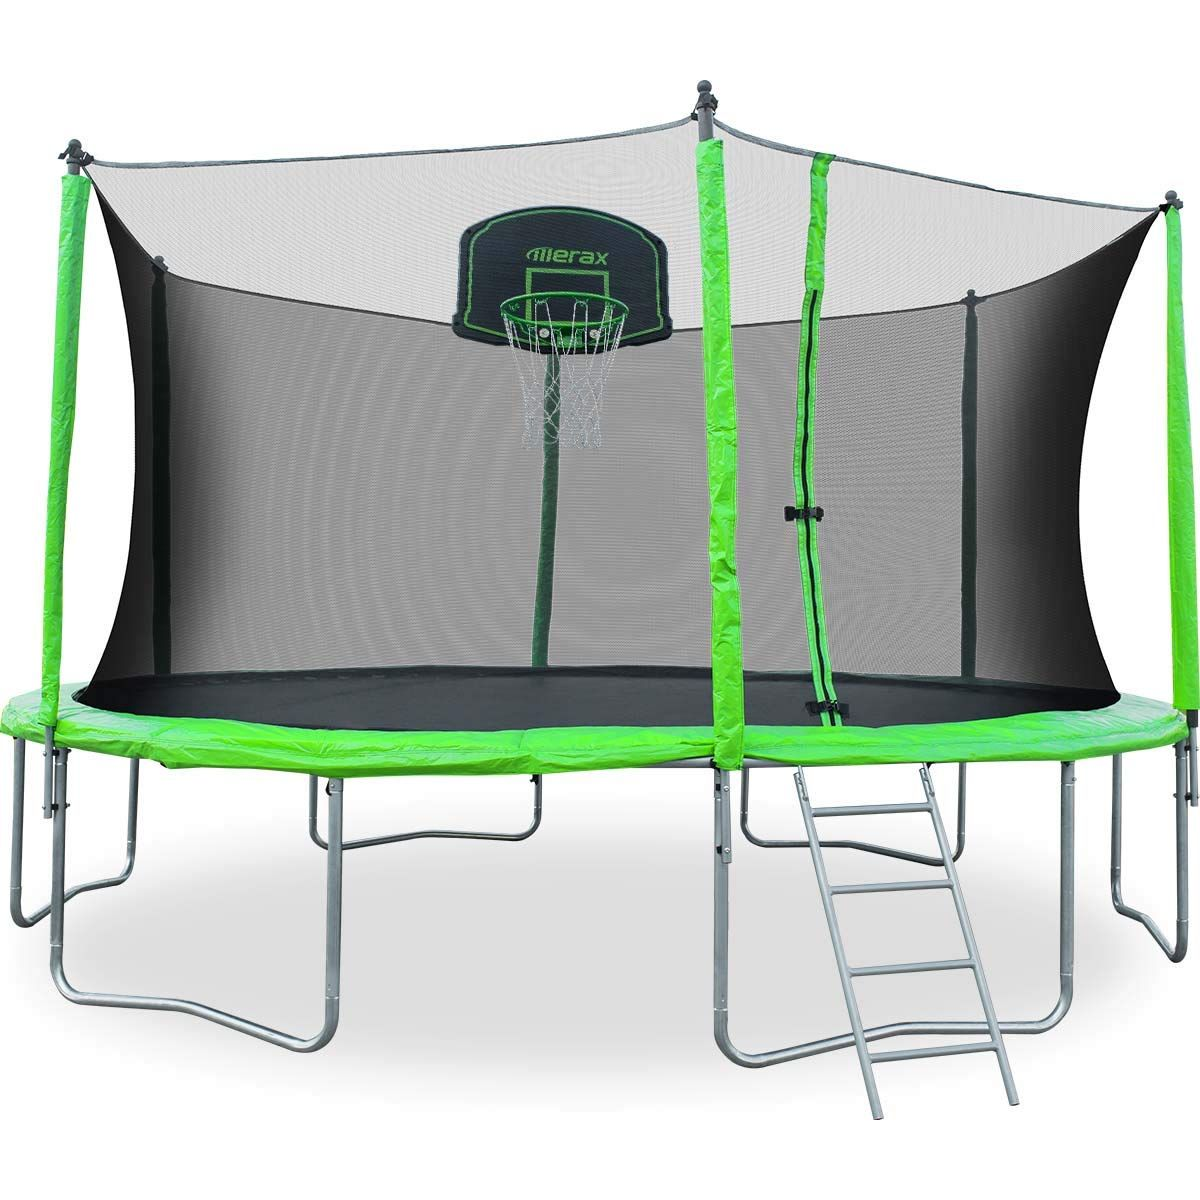 Merax 12 14 Ft Round Trampoline with Safety Enclosure